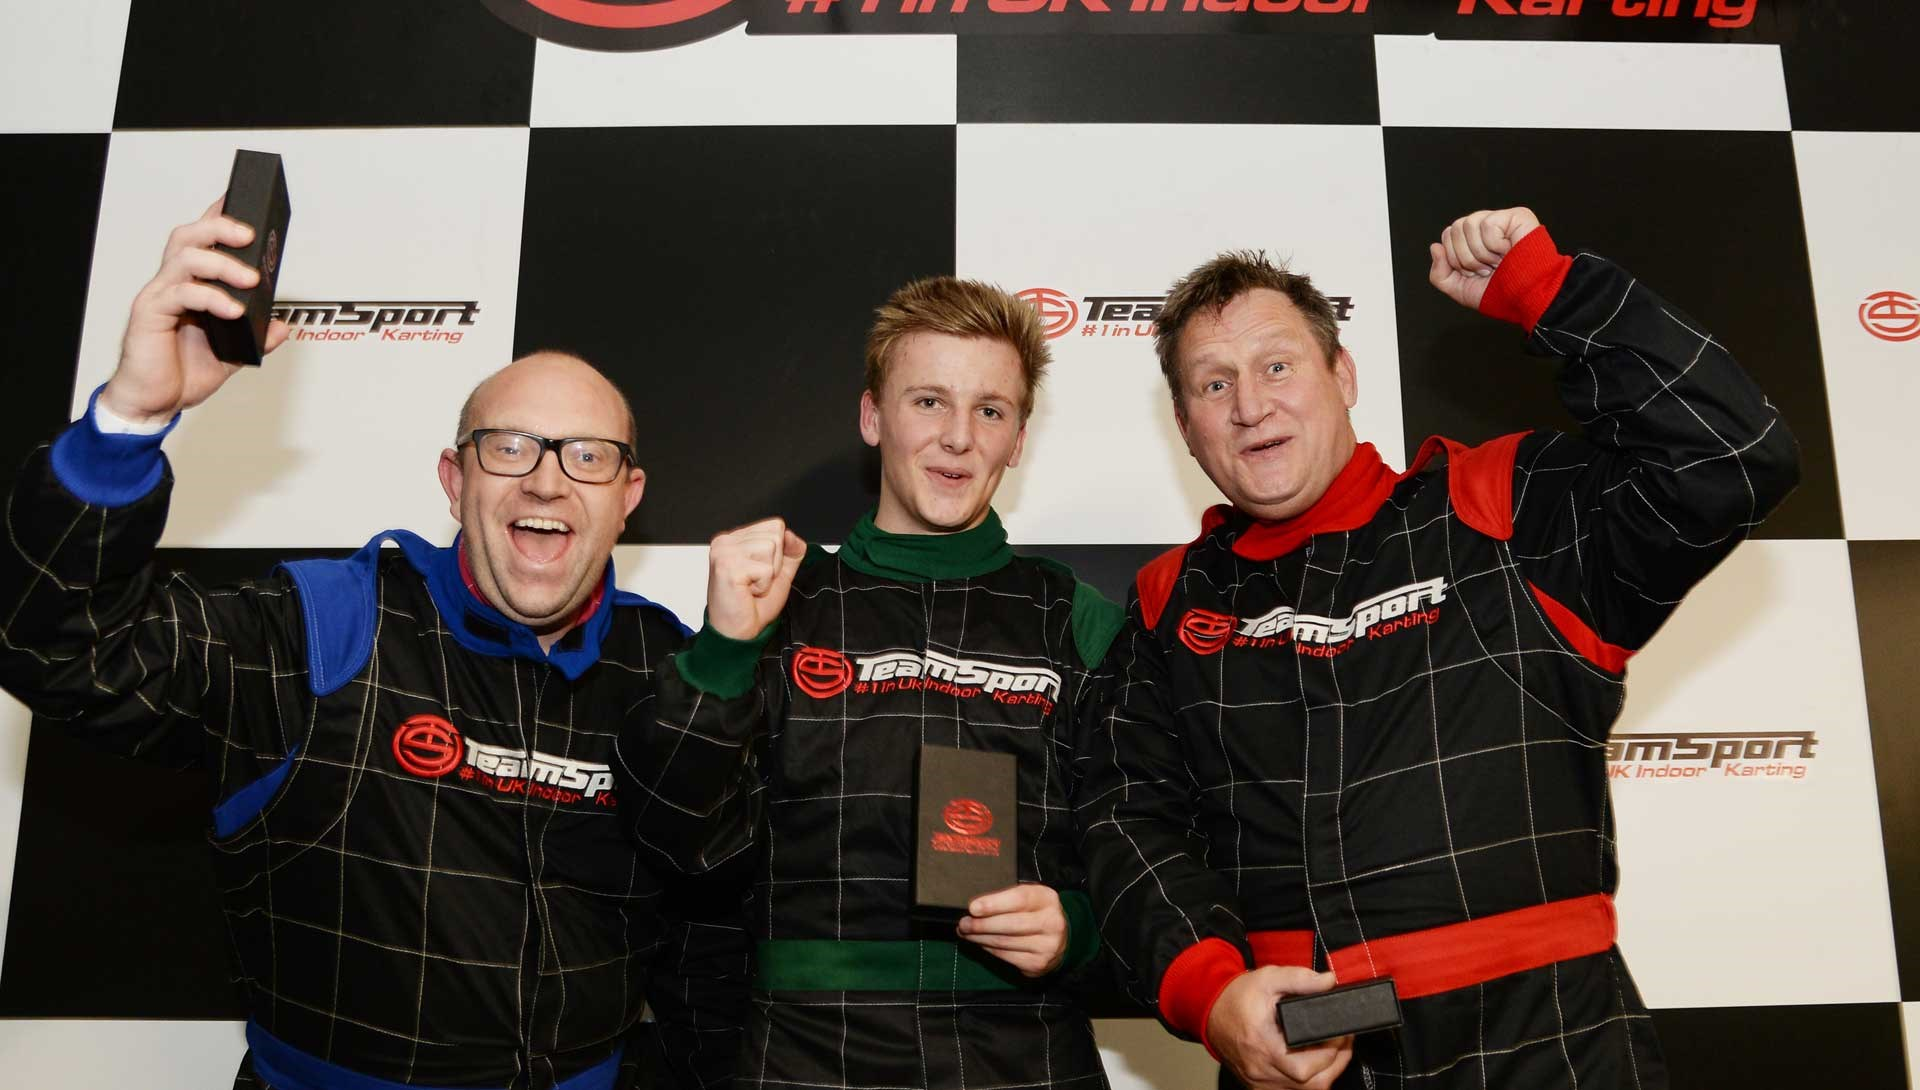 TeamSport_Gallery_Go_karting_Brighton_1920x1090-min_3.jpg